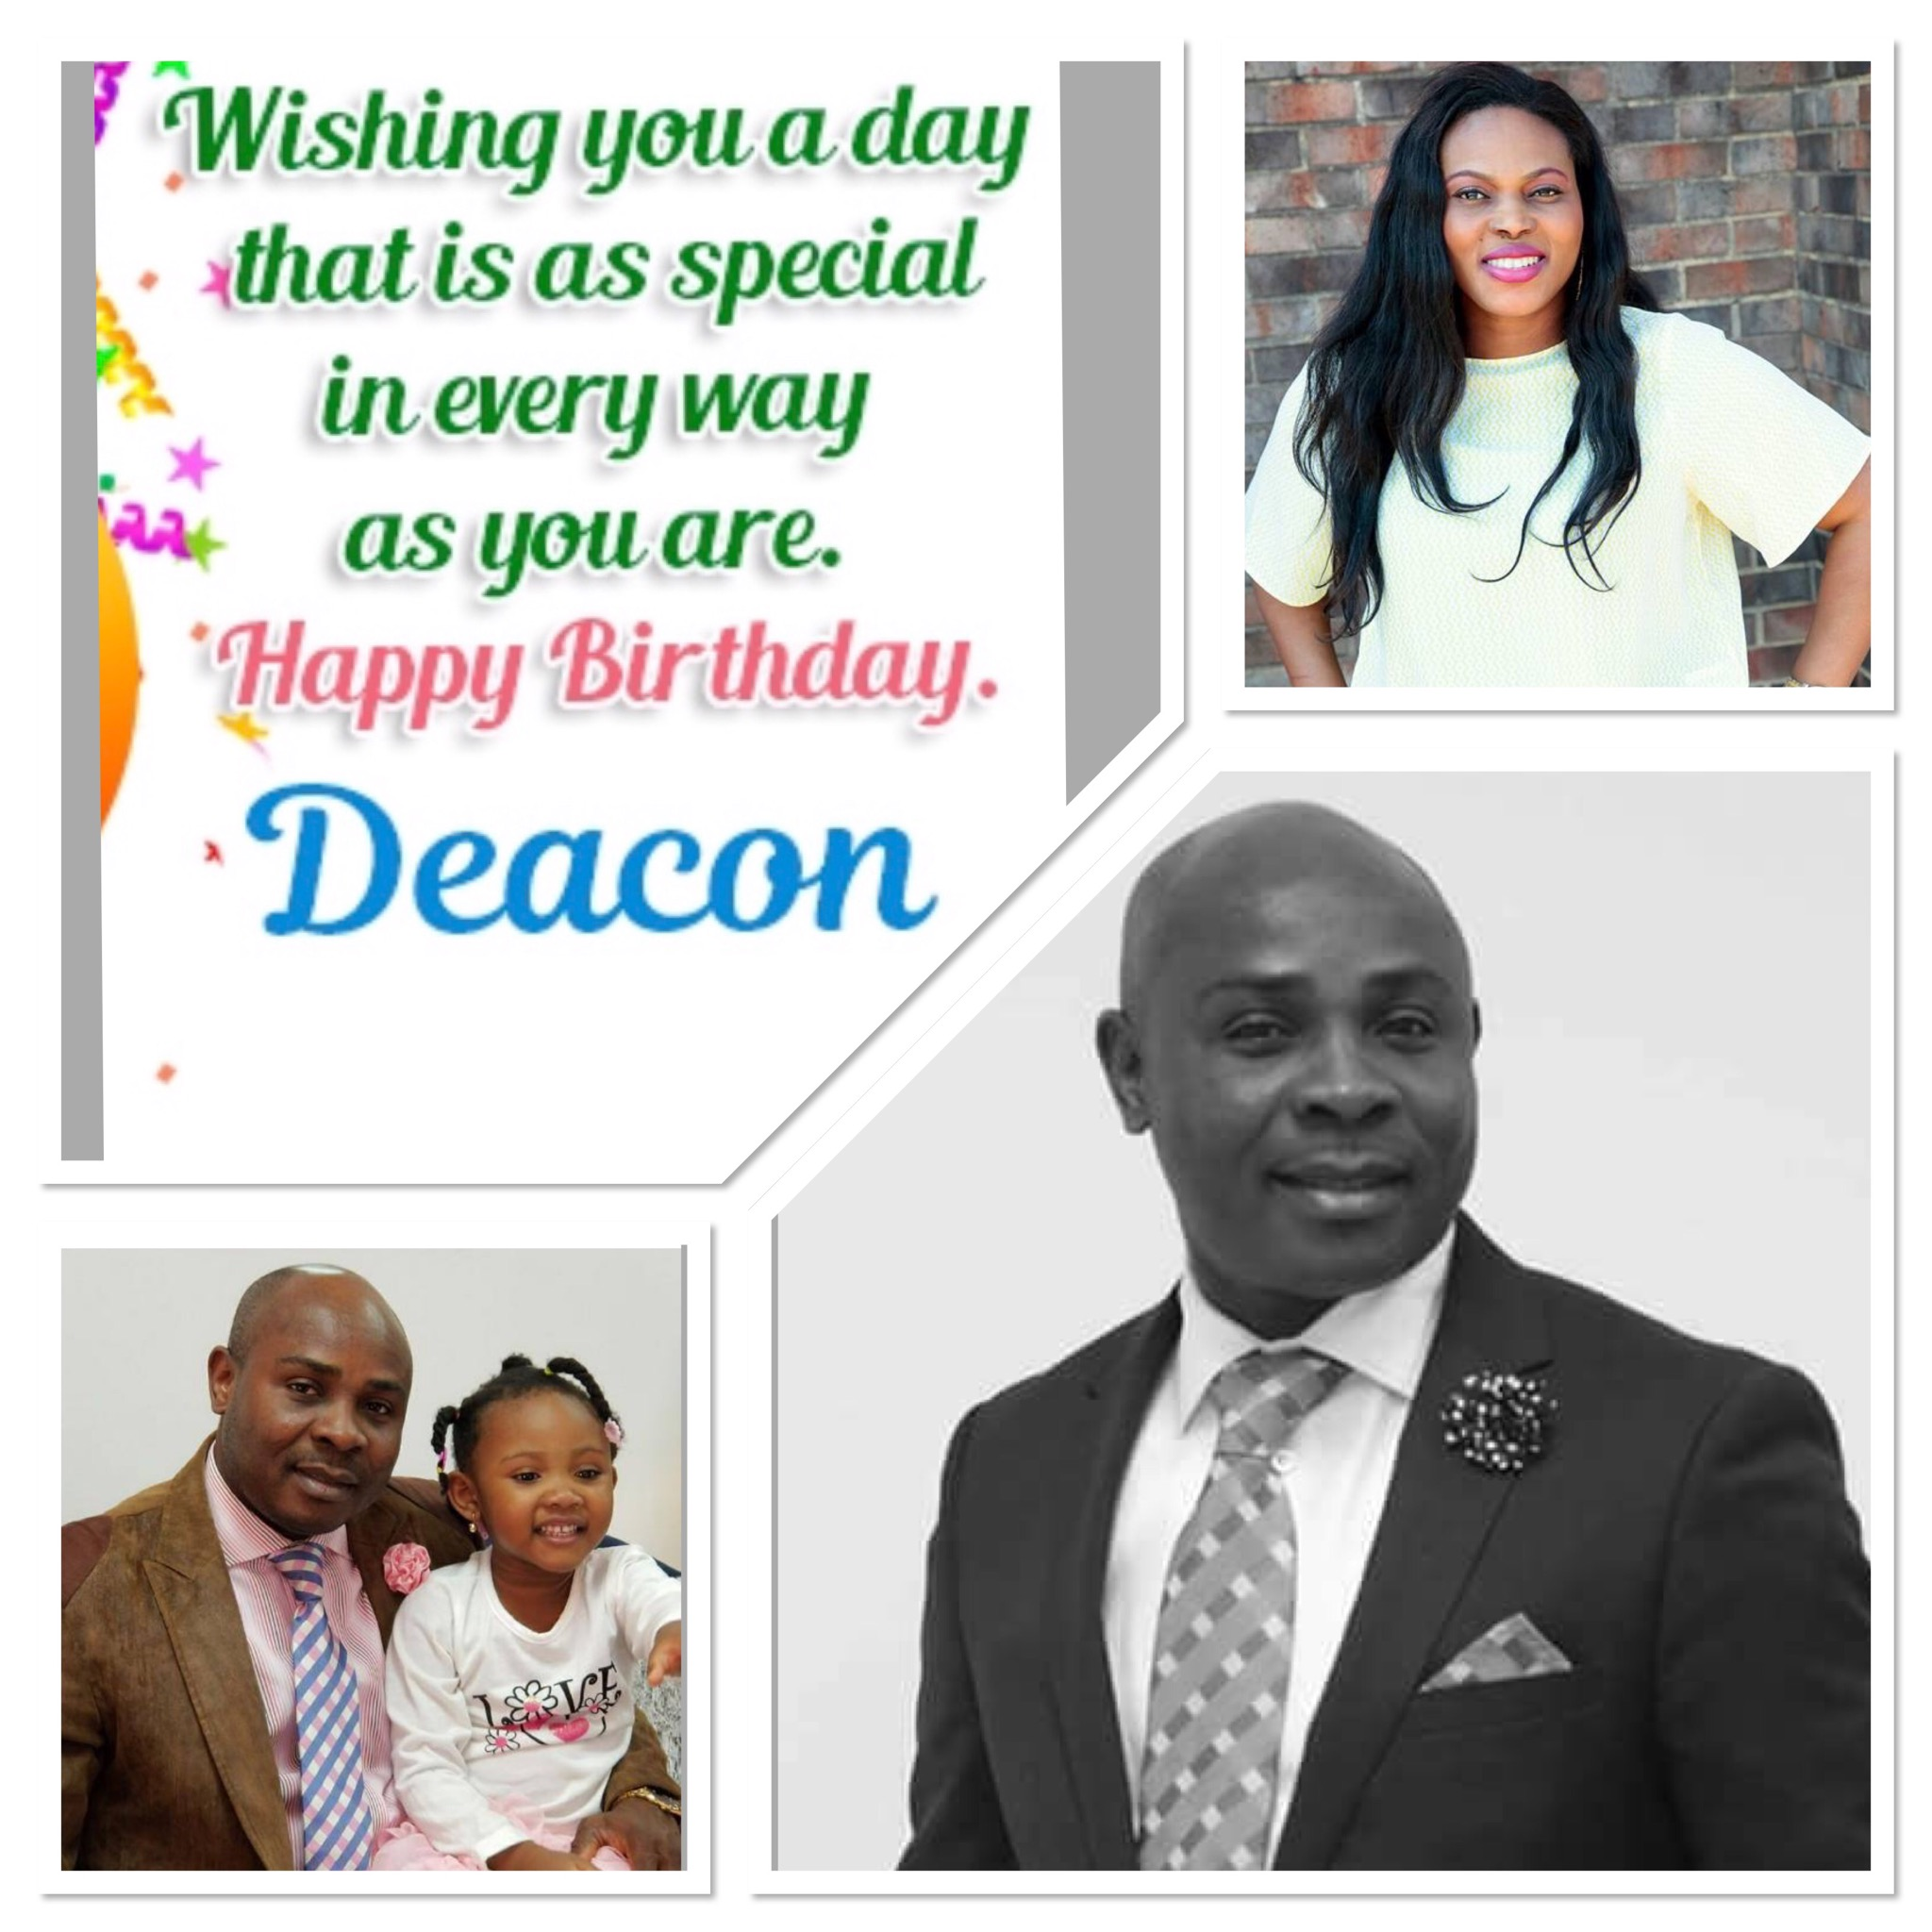 HBD to our esteemed Dcn